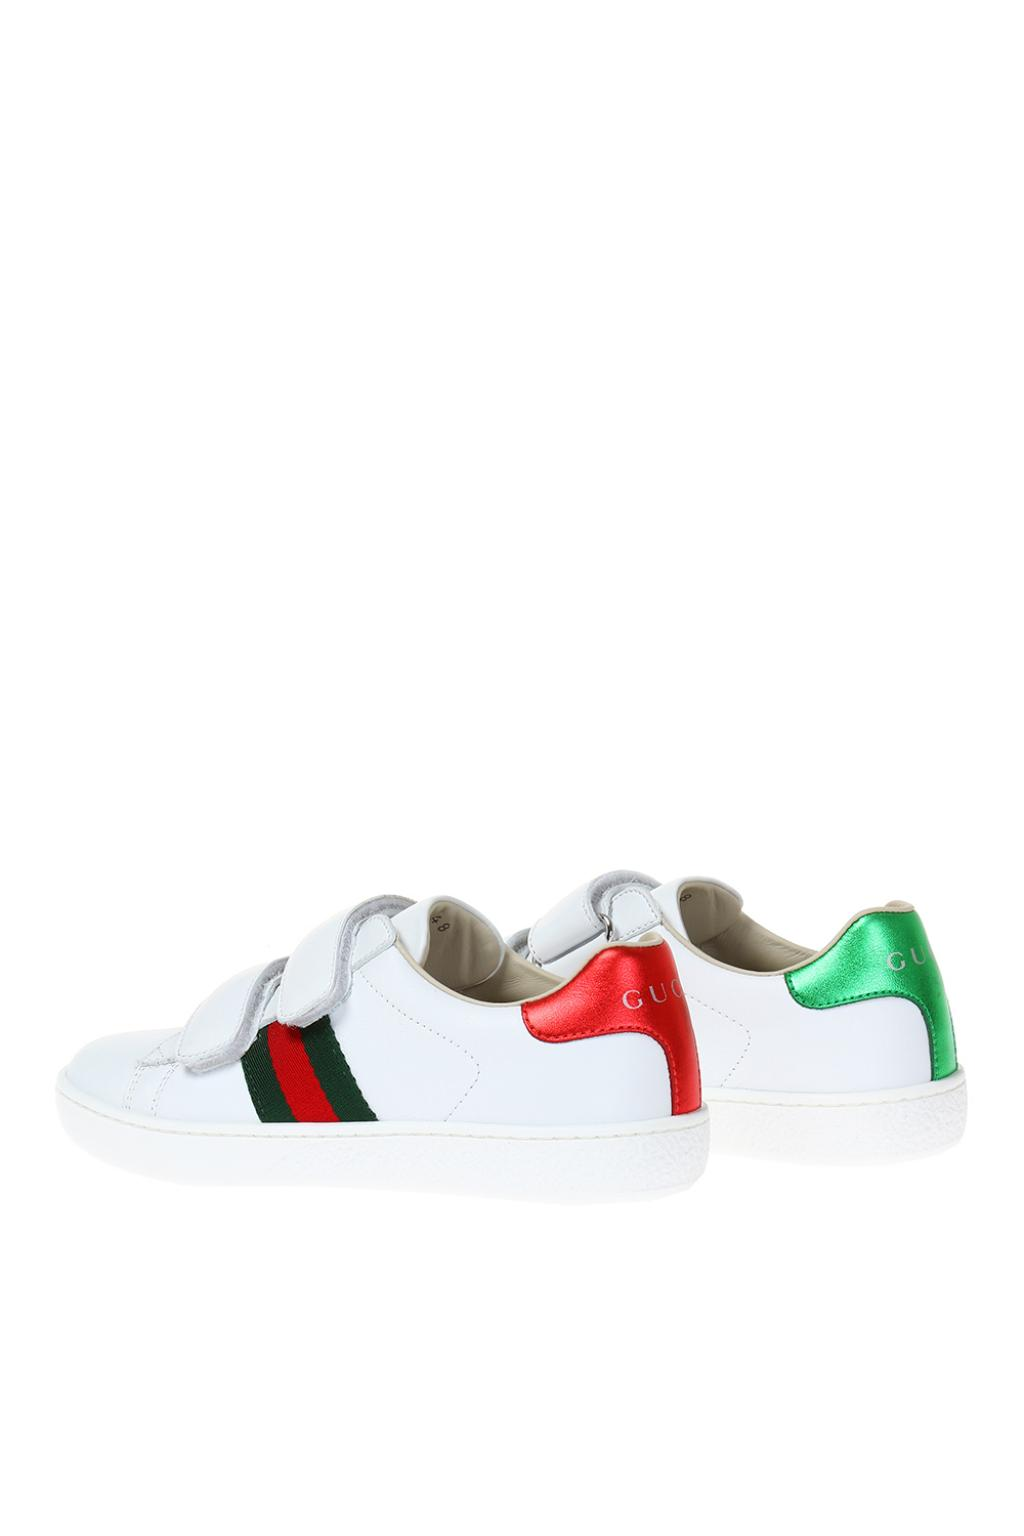 Gucci Kids 'Ace' sport shoes